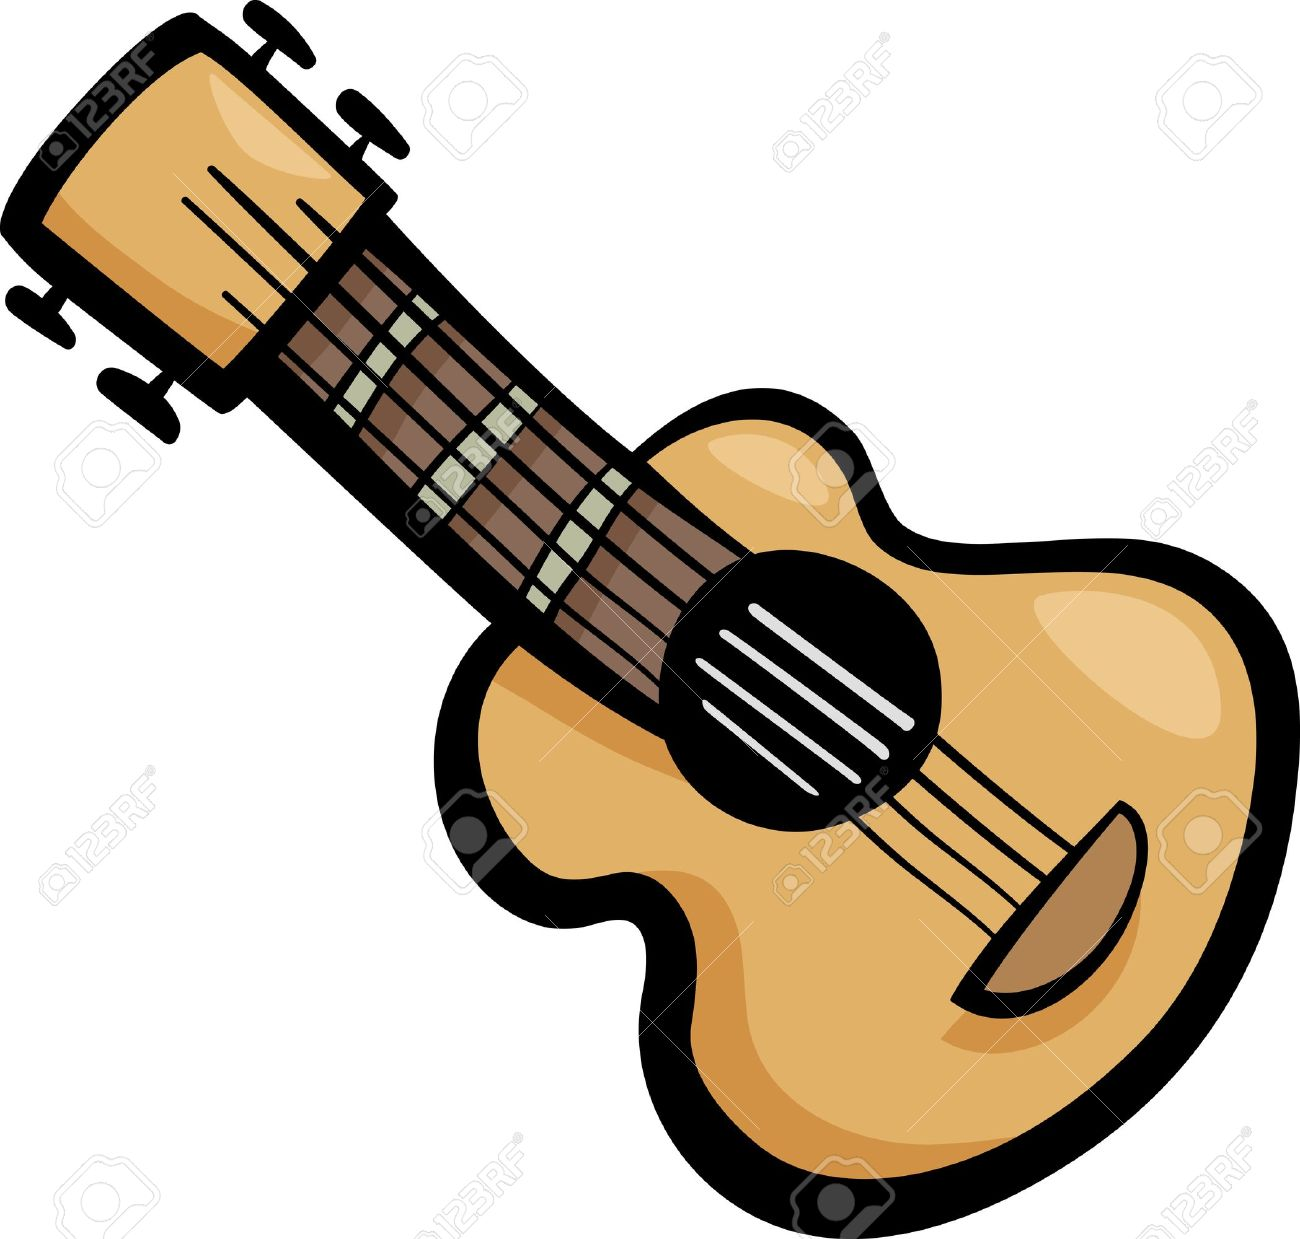 clip art guitar pictures - photo #42